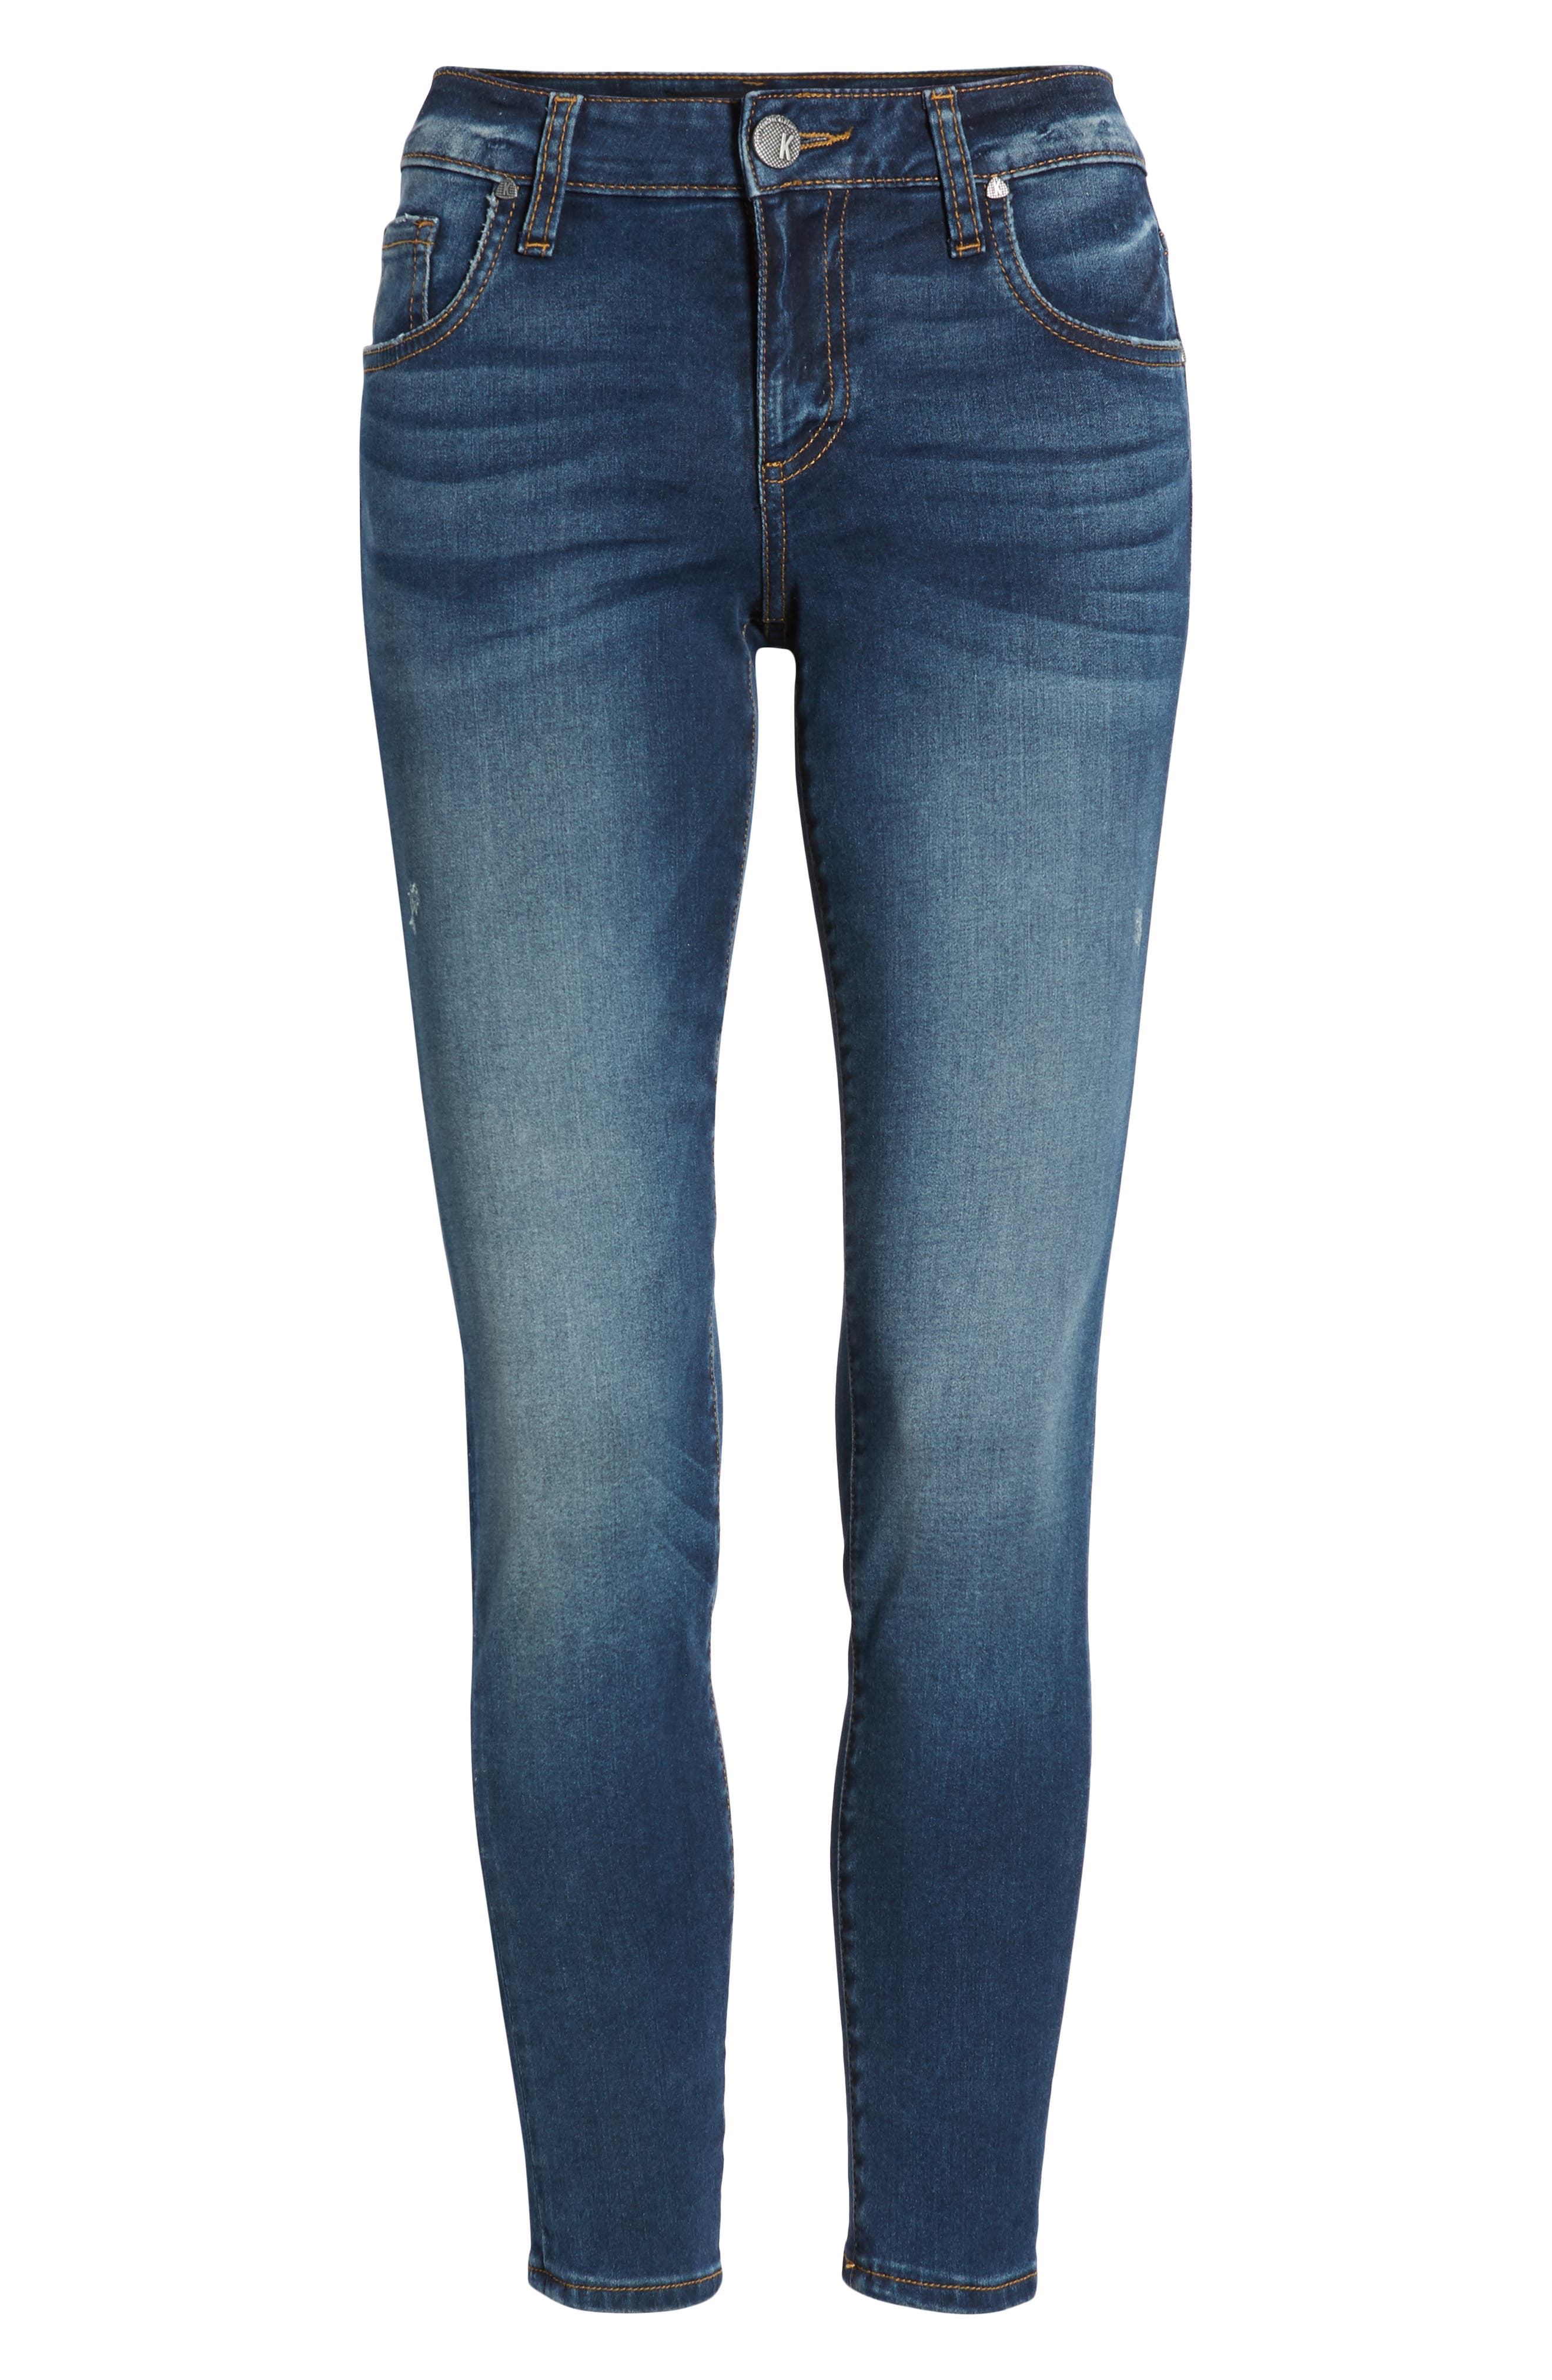 KUT FROM THE KLOTH, KUT From The Koth Donna Ankle Skinny Jeans, Alternate thumbnail 7, color, 400